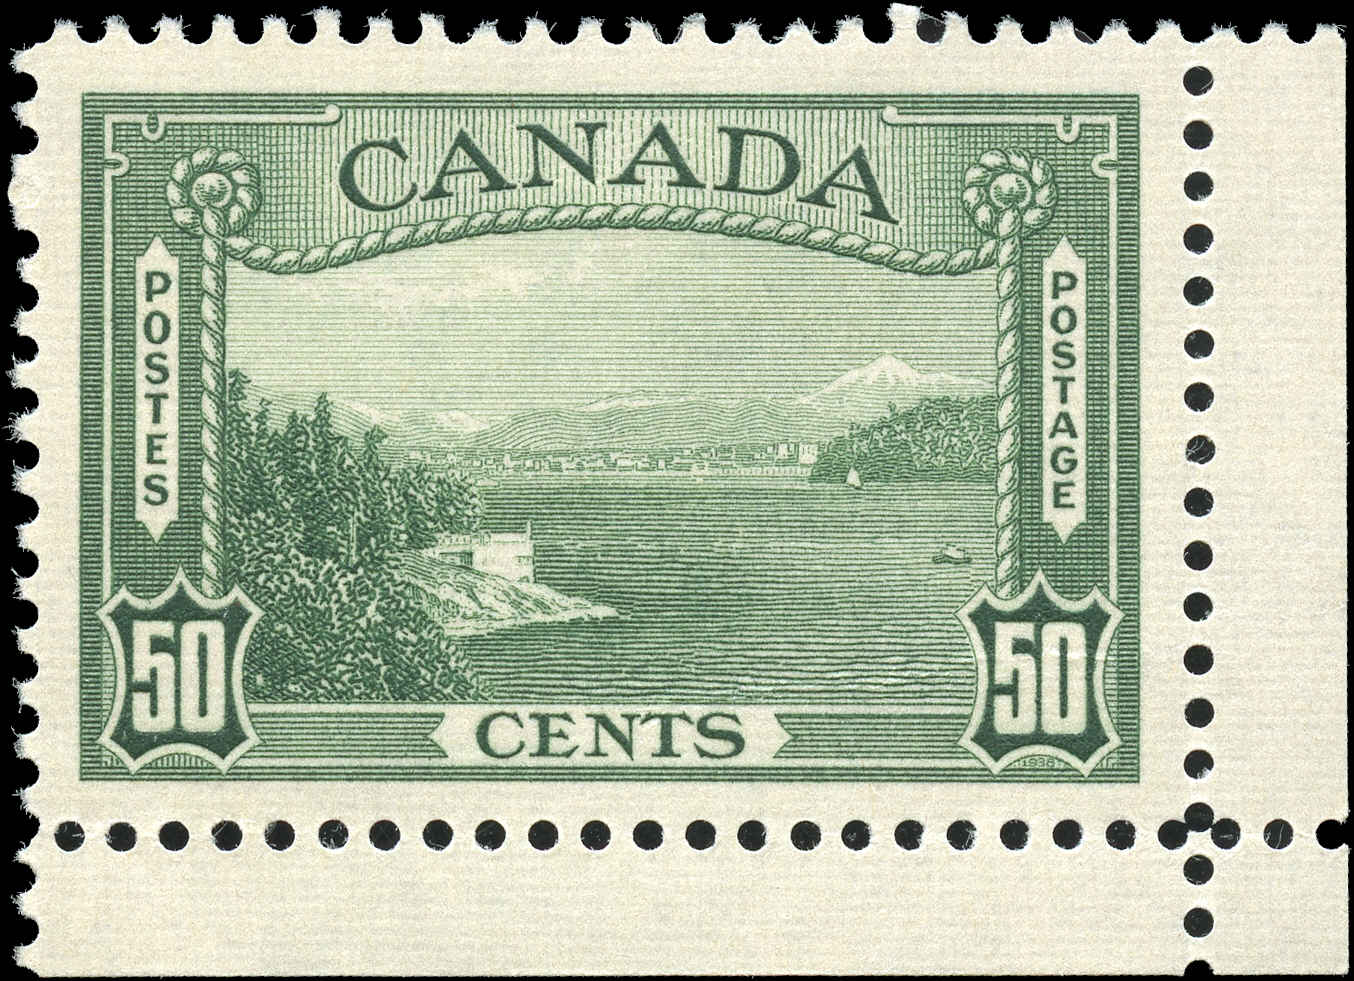 Canada #244, 1938 Pictorial Issue, VF, MH